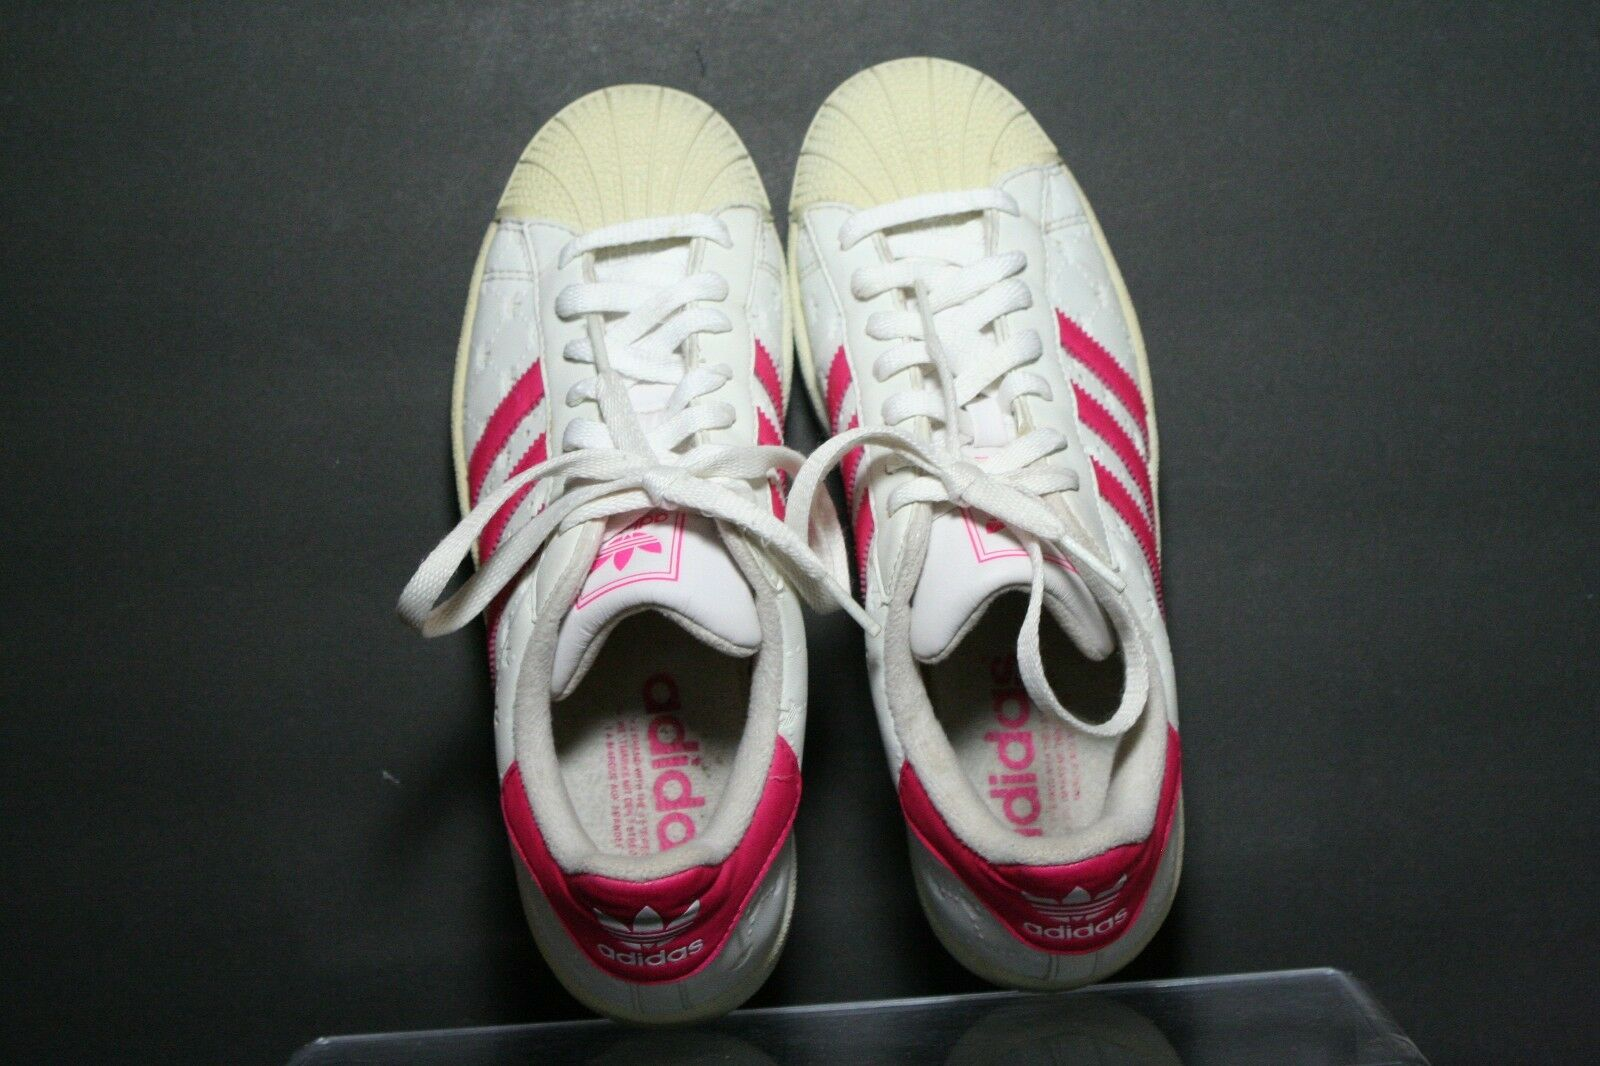 Adidas frauen superstar nestlö og 2004 frauen Adidas 7,5 multi - weiß - pinke trefoil athletic hip - hop 67e4c9